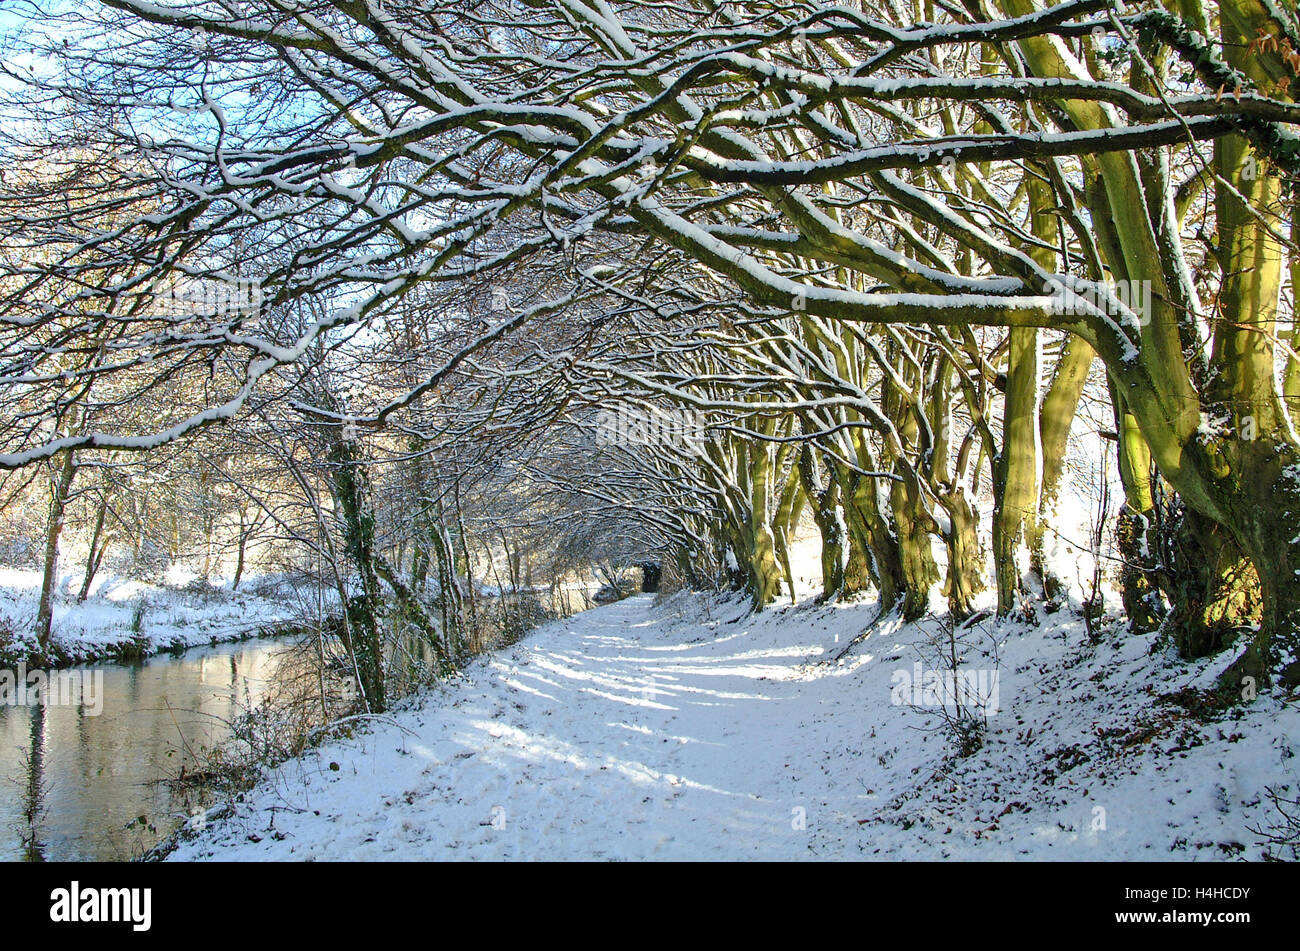 Snow covered path along River Itchen Navigation Heritage Trail, Eastleigh, Hampshire, England. - Stock Image